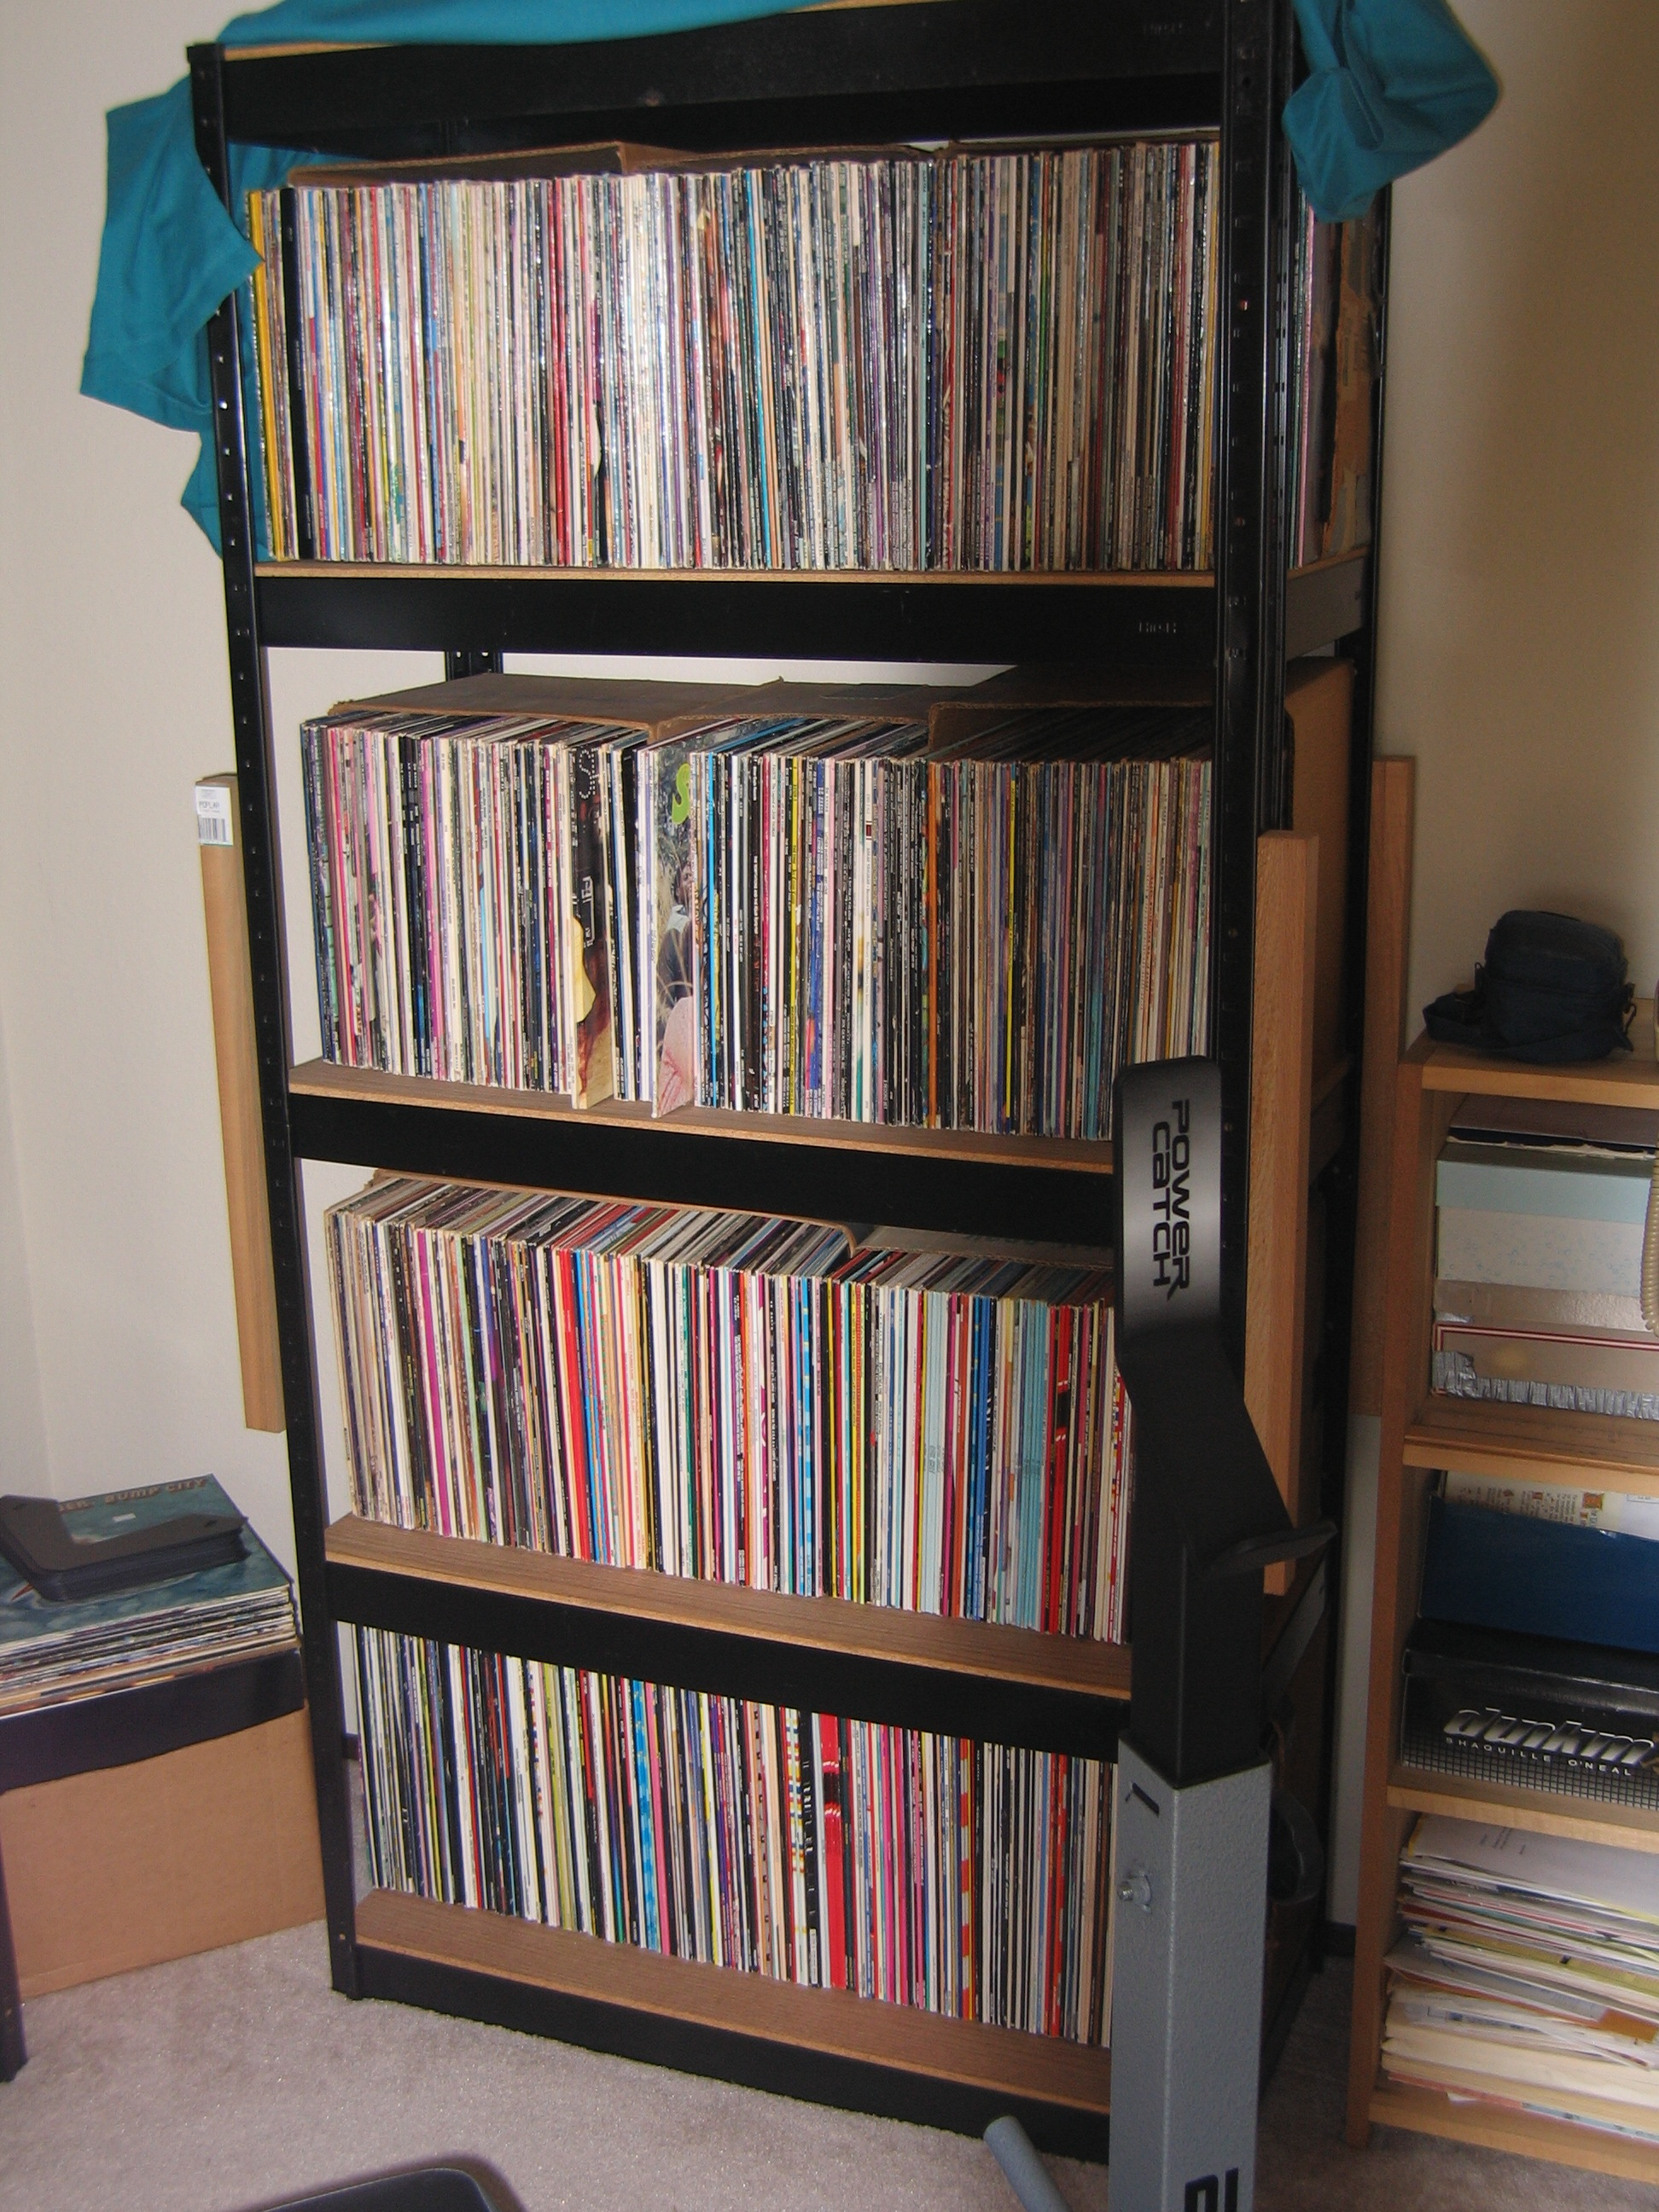 Kenneth Cobb's current record collection